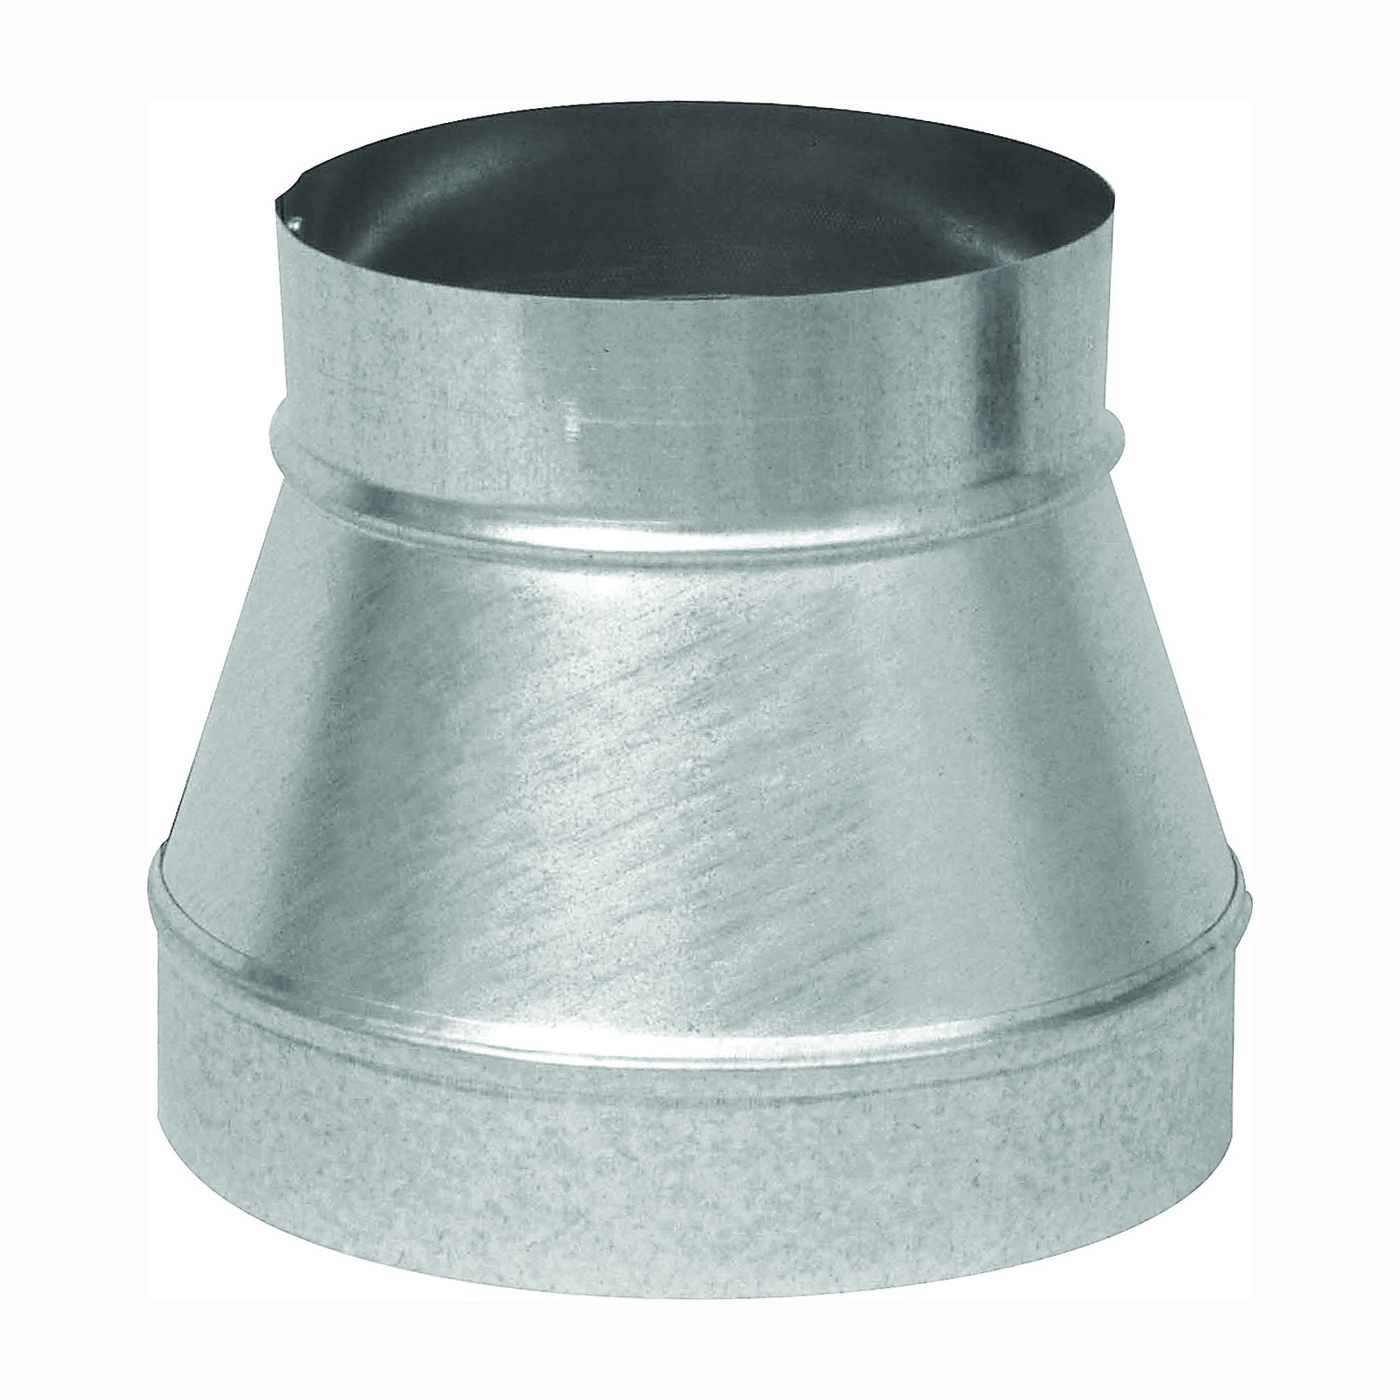 Picture of Imperial GV0790 Stove Pipe Reducer, 8 x 6 in, 26 ga Thick Wall, Black, Galvanized